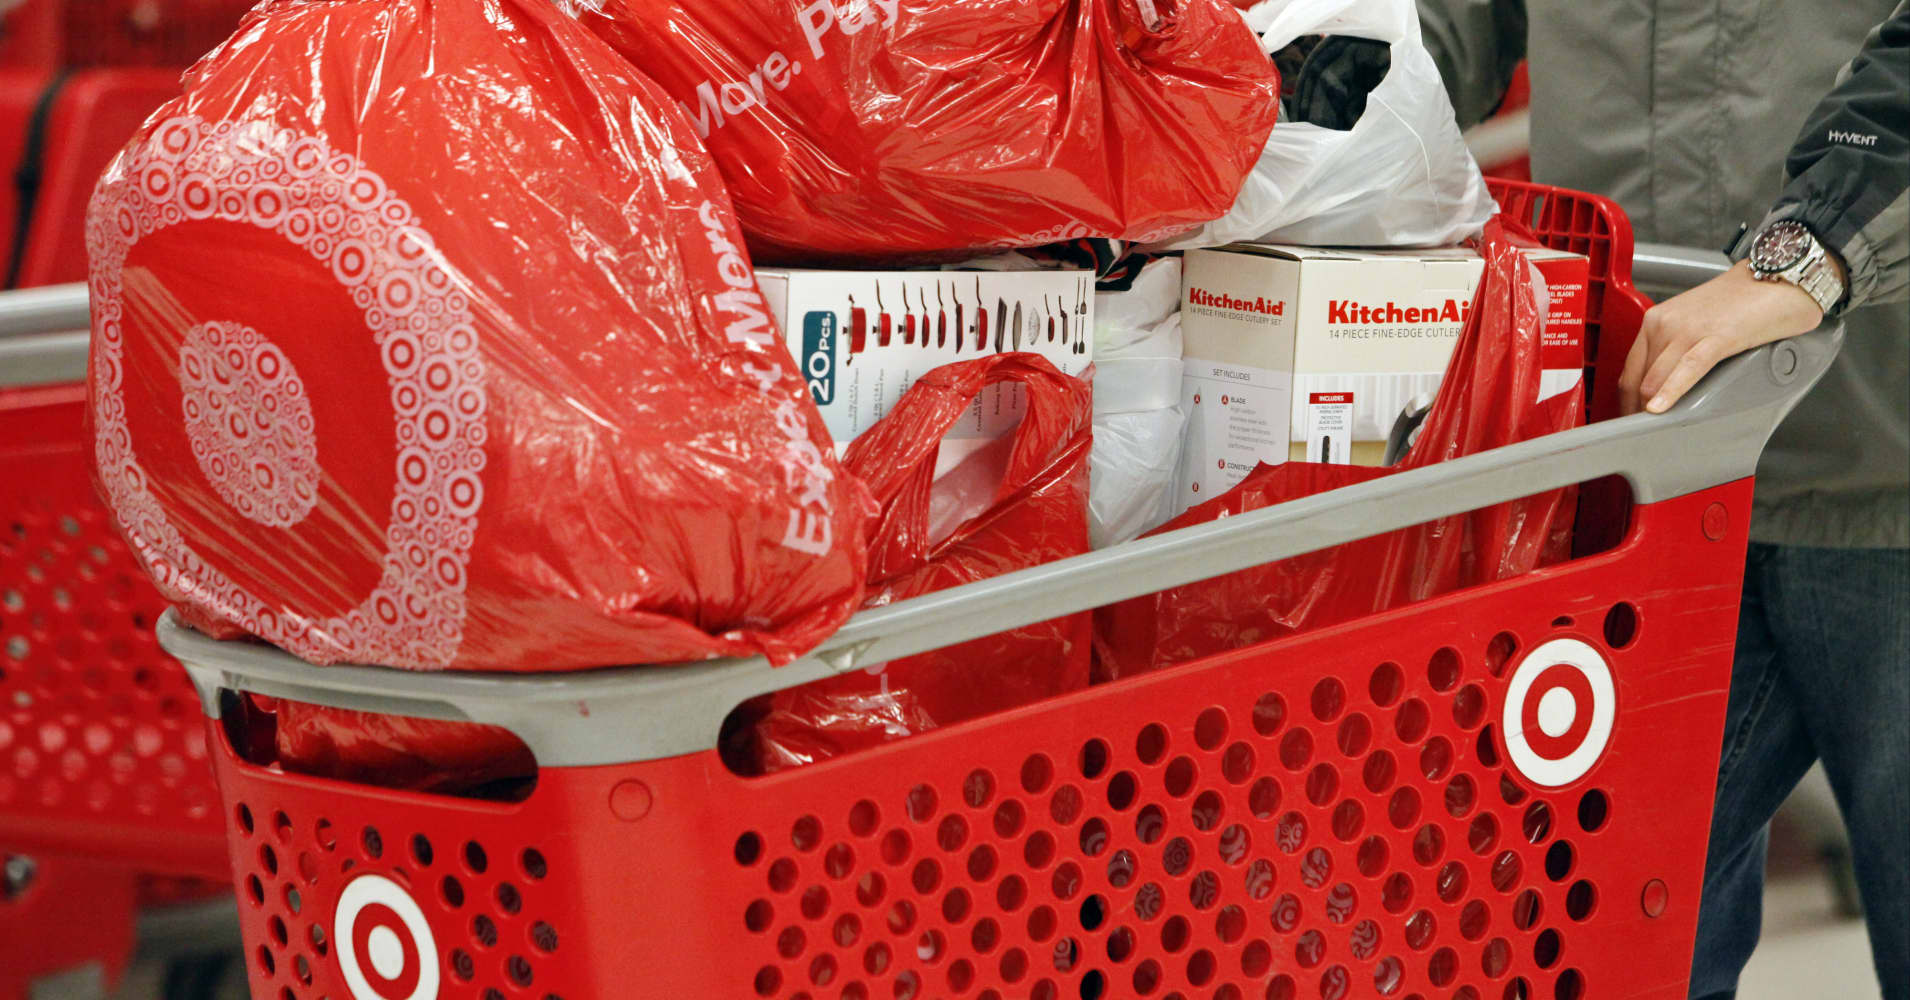 A customer pushes a shopping cart laden with merchandise at a Target store opening ahead of Black Friday in Chicago.